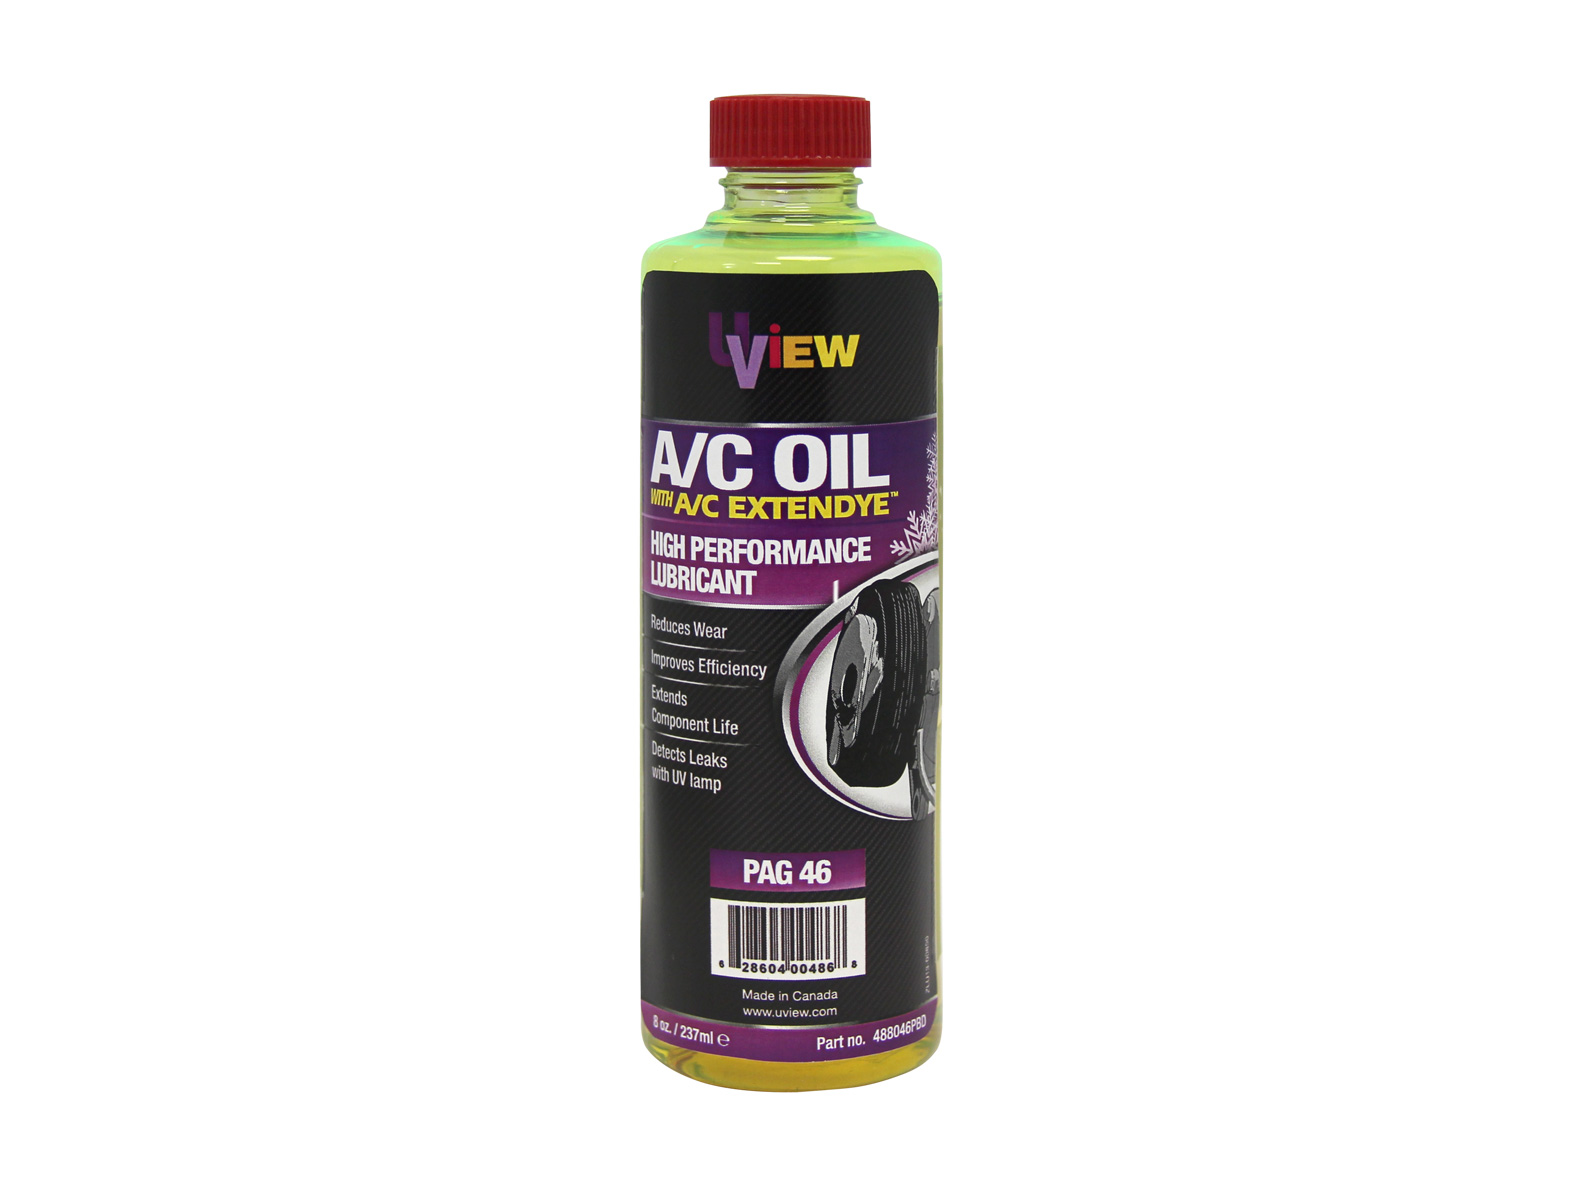 488046PBD | PAG 46 Oil with A/C ExtenDye - CPS Products Inc